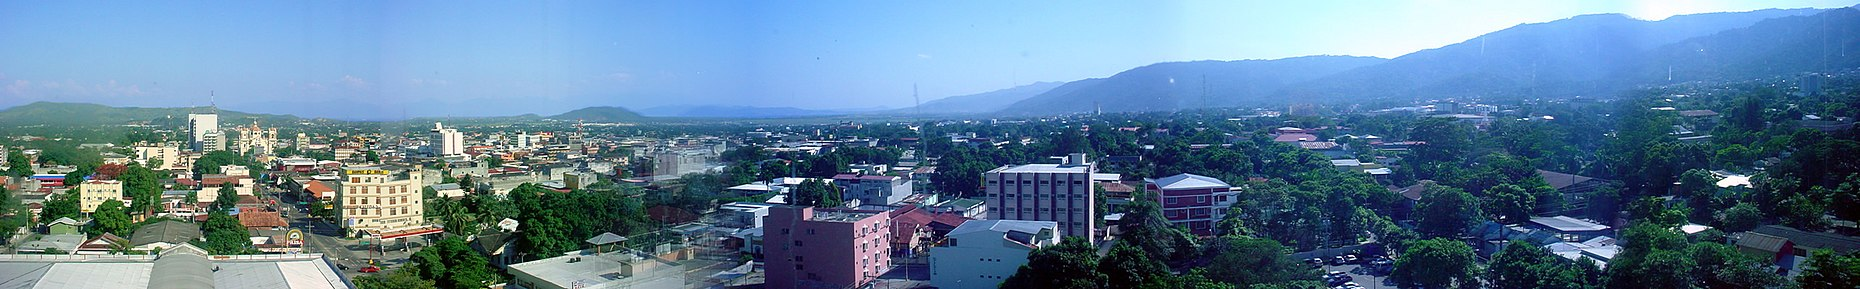 Panoramic of the city. Panoramica-san-pedro-sula.jpg